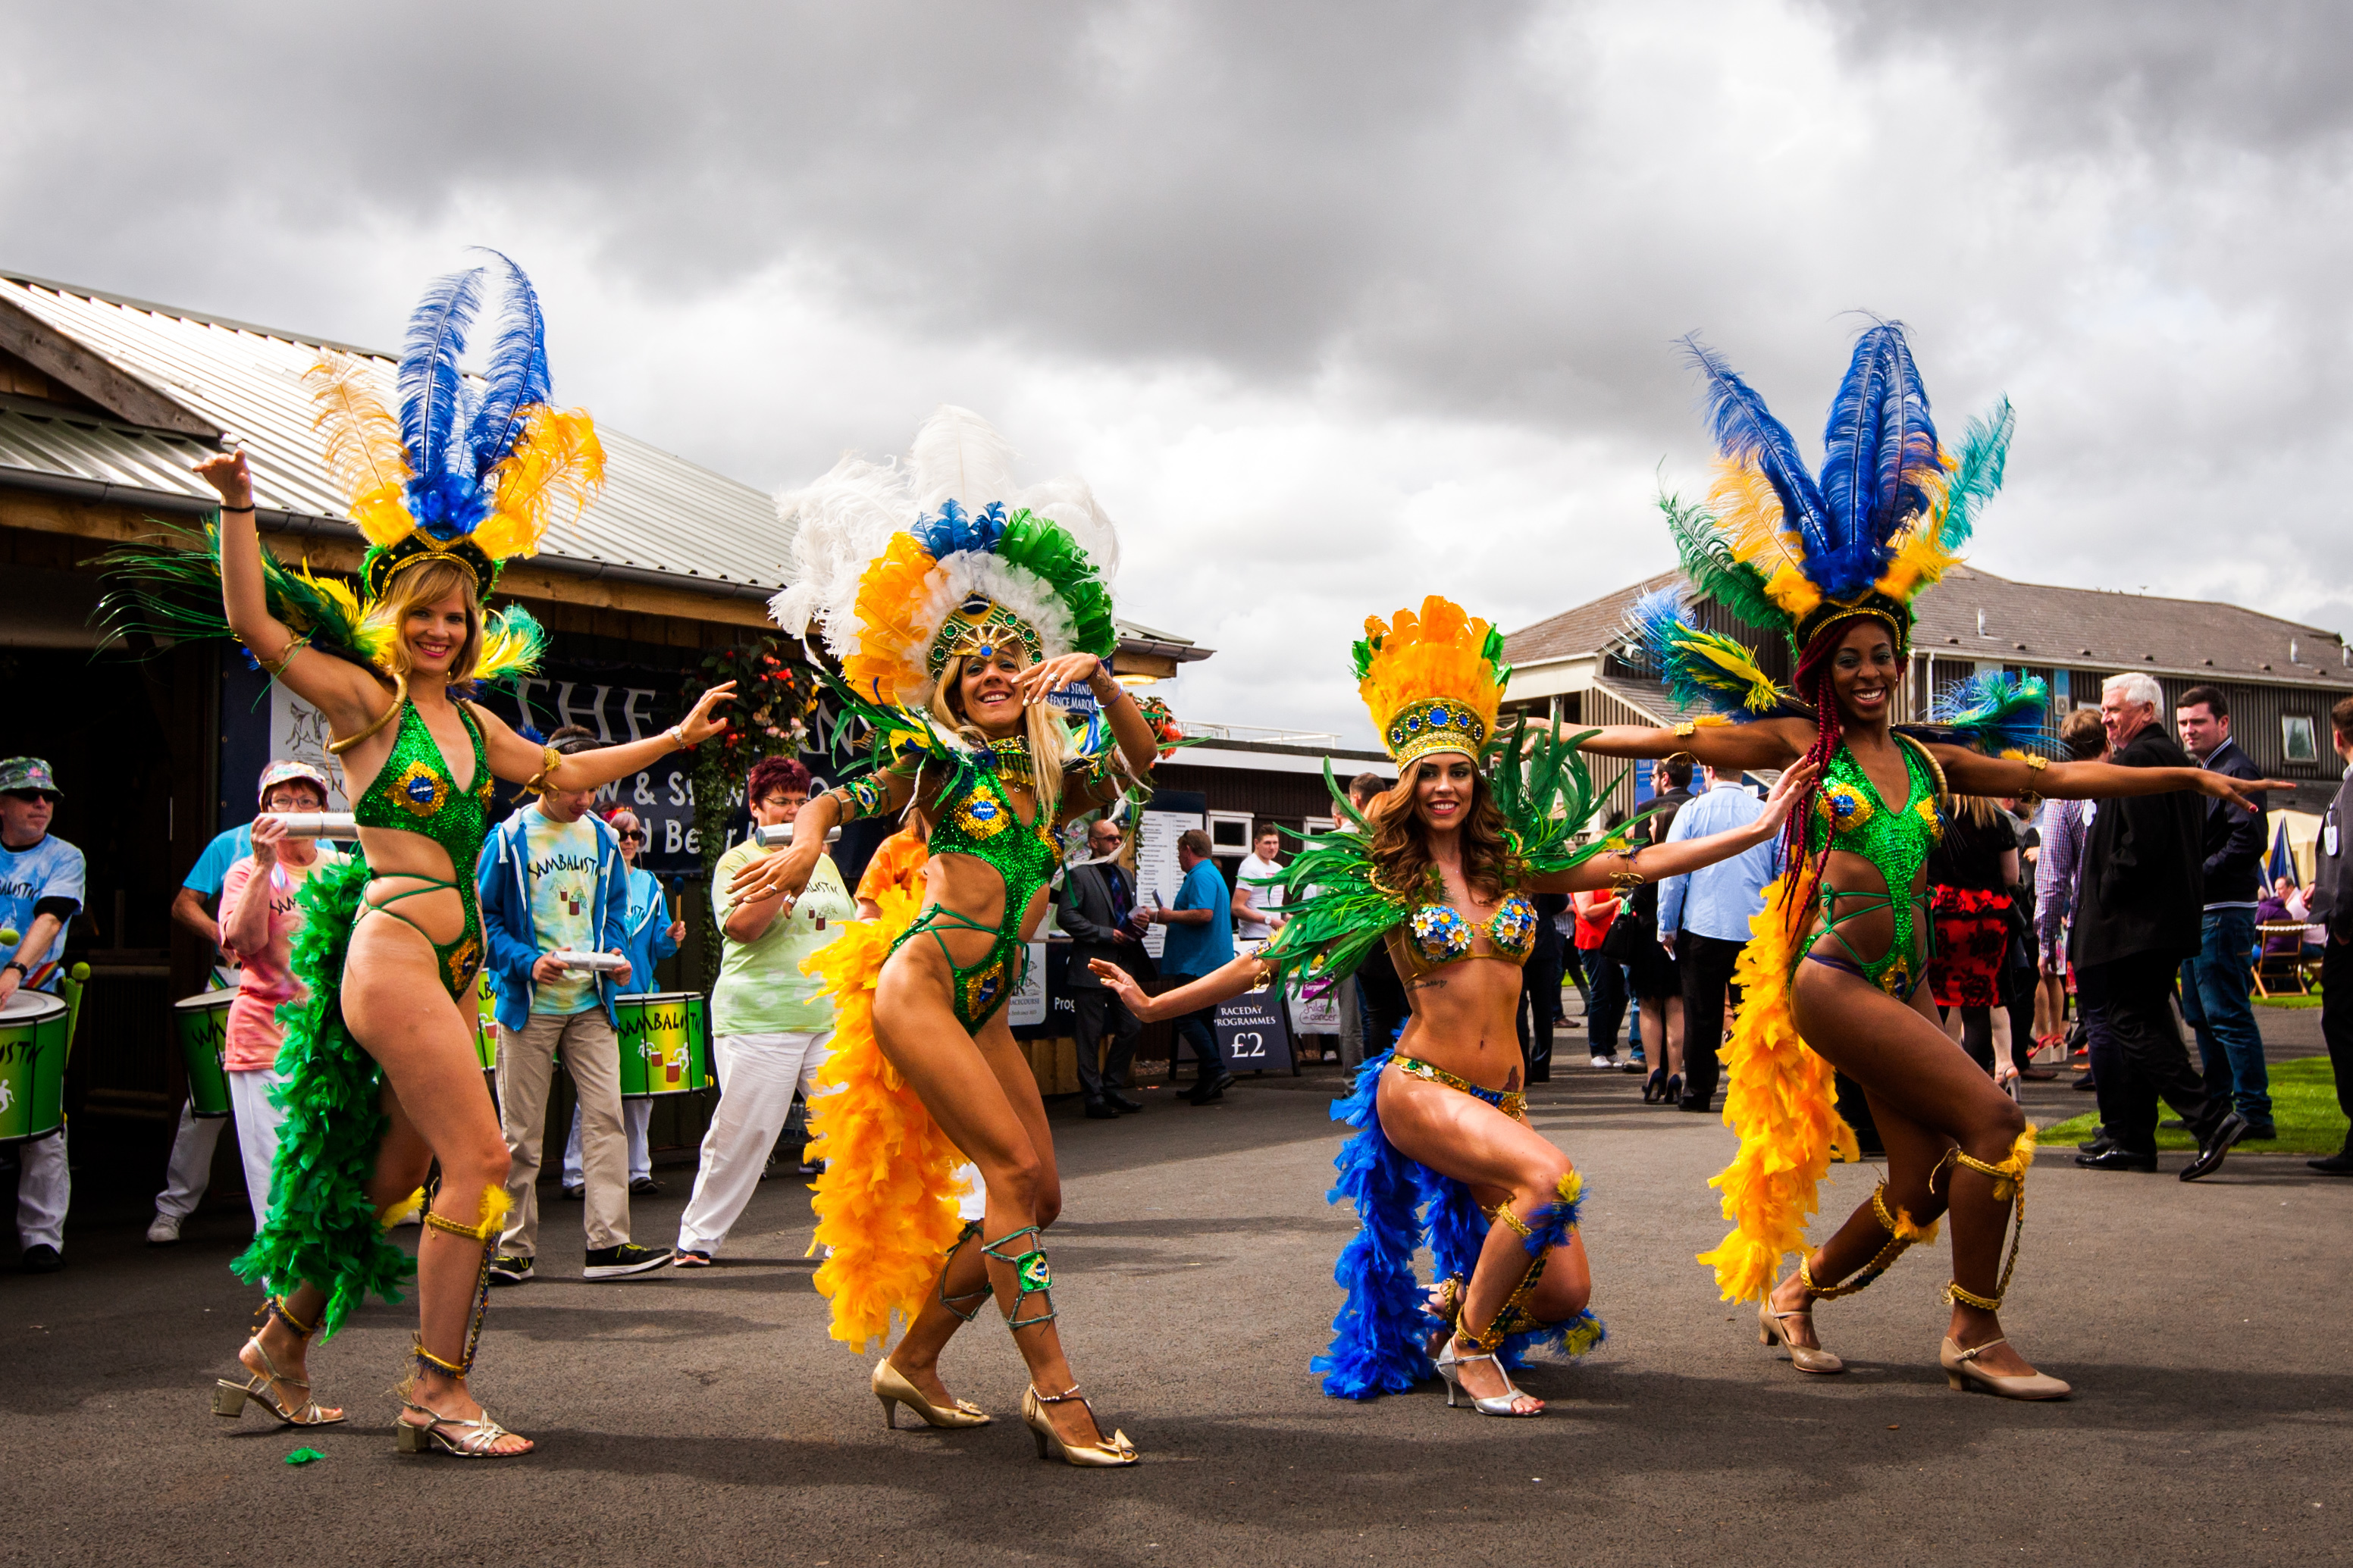 Courier News - Perth - Jamie Buchan Story. Spirit of Rio event as Carnival Raceday hits the Racecourse in Perth featuring music, dancing and racing. Picture shows performance by Brazilian Samba dance group Brazamba. Perth Racecourse, off Isla Road, Perth. Saturday 20th August 2016.